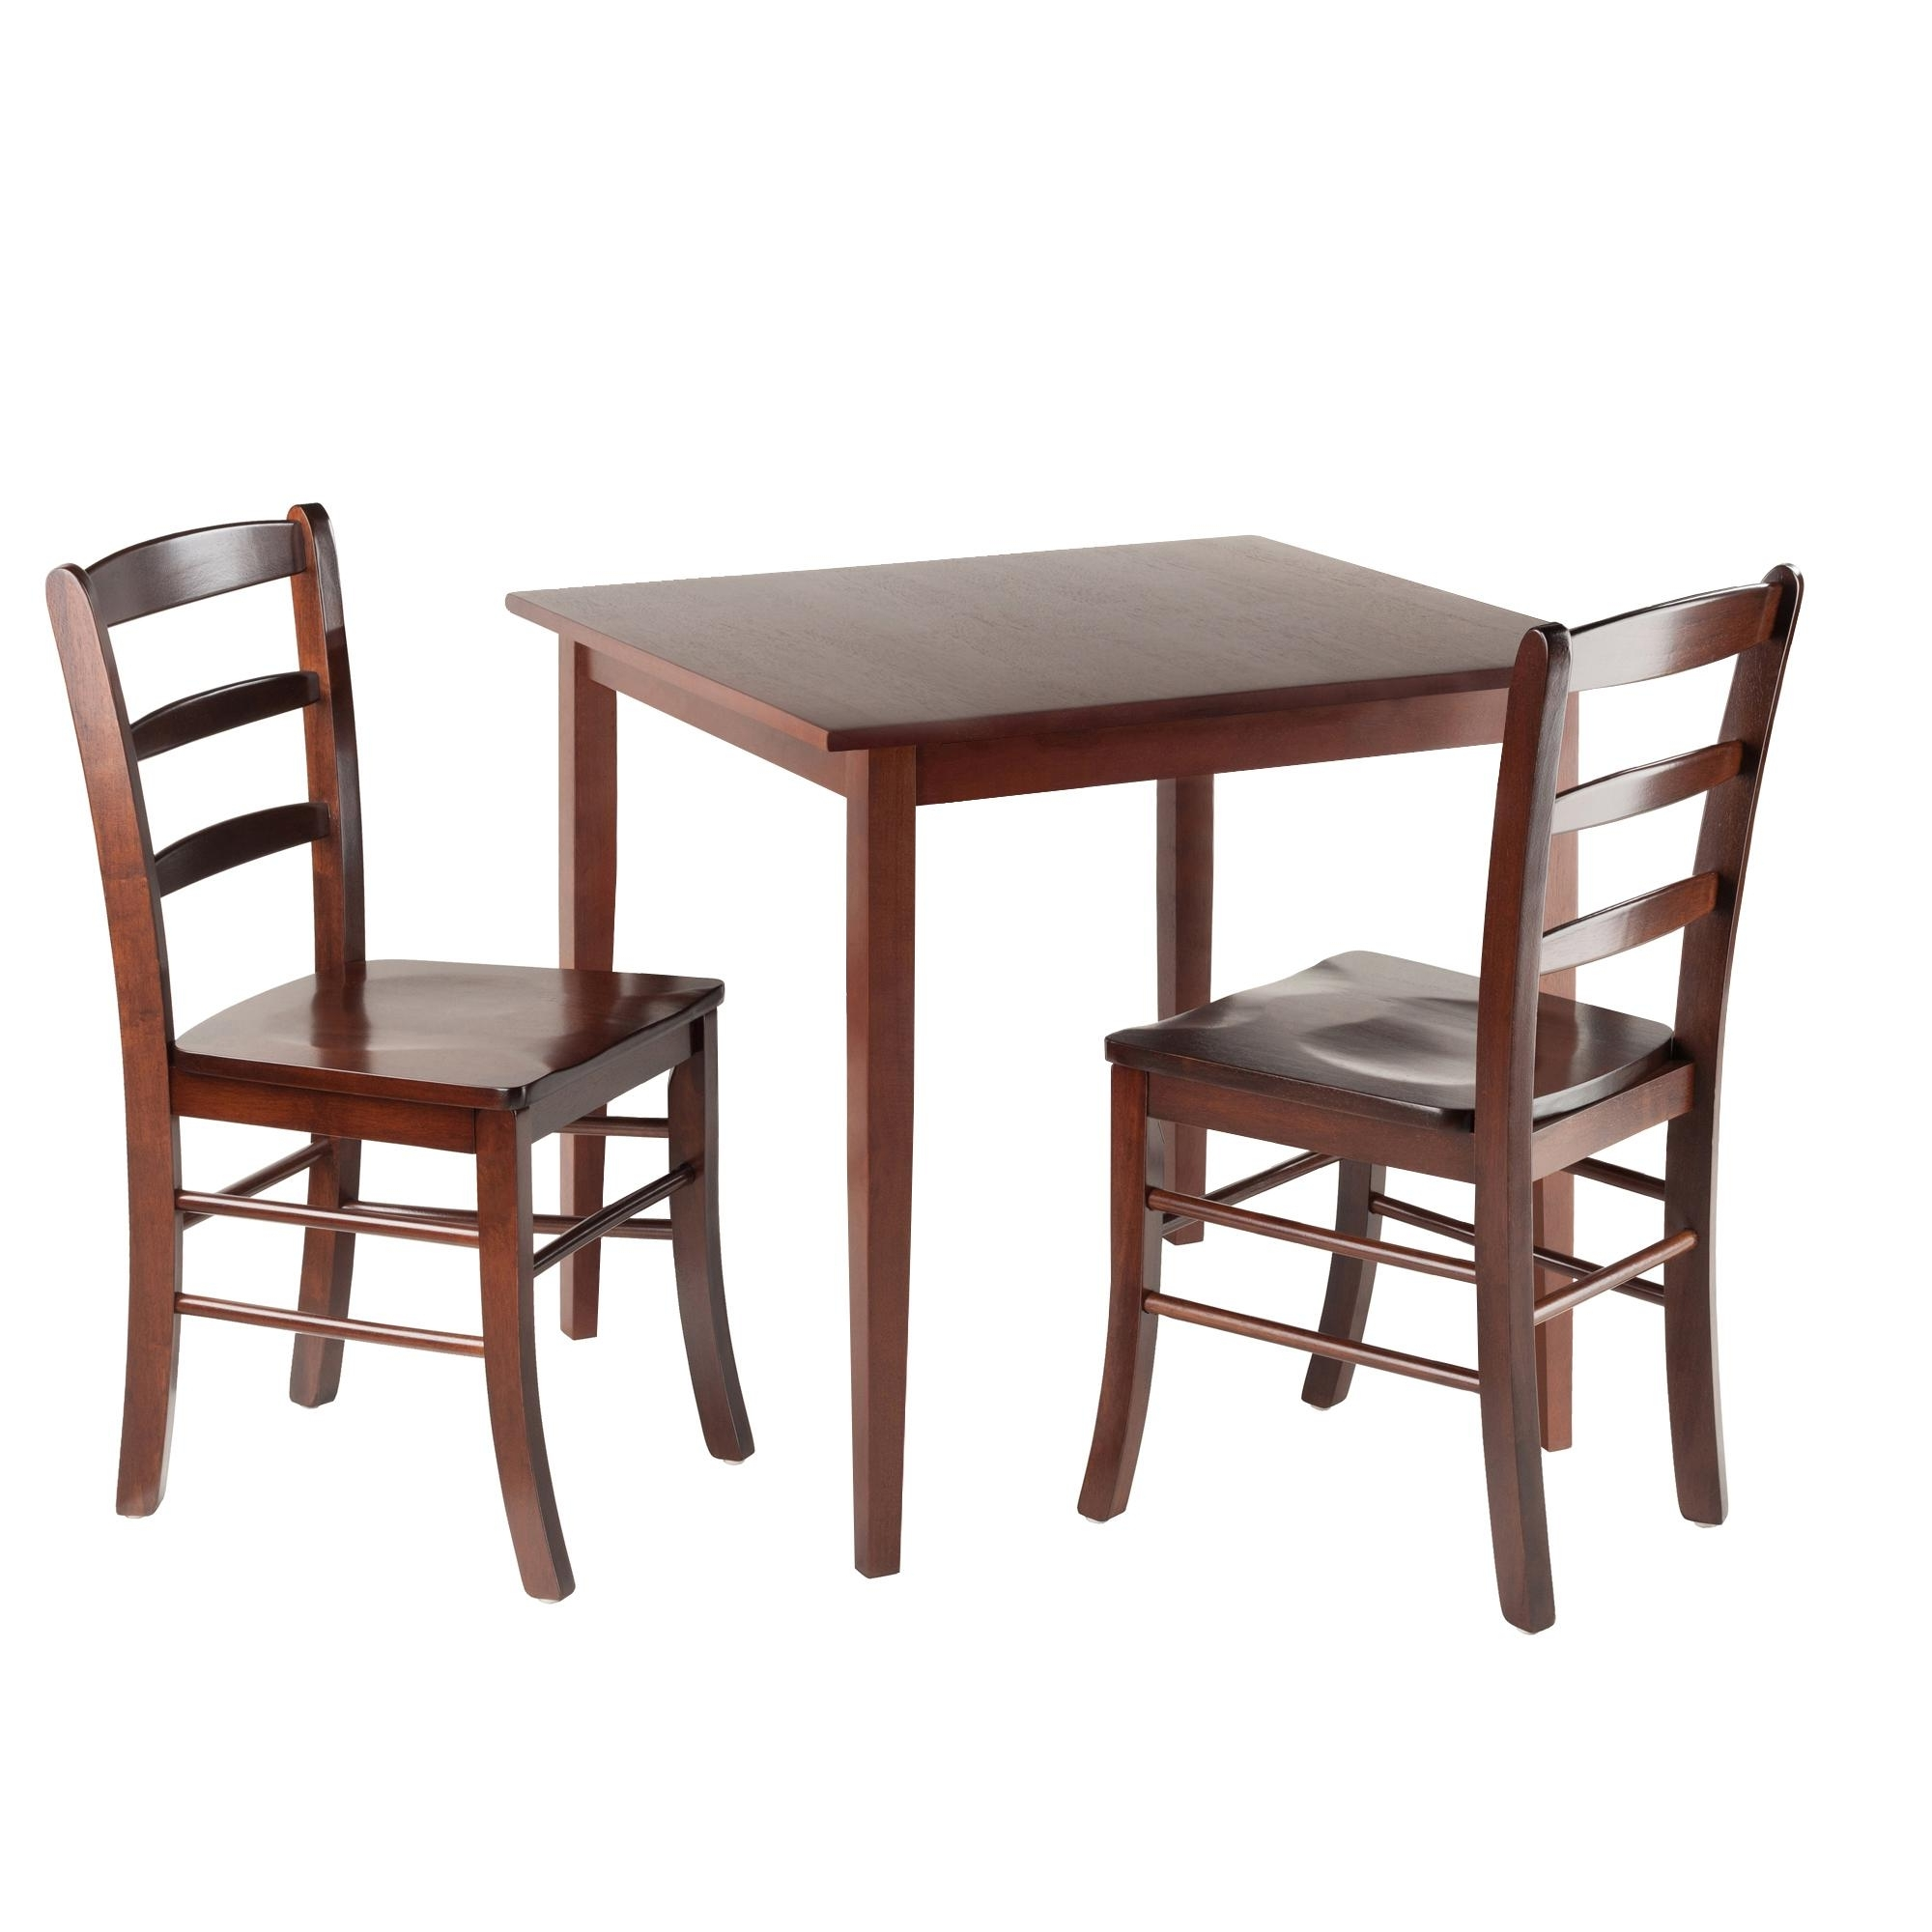 Amazon – Winsome Groveland Square Dining Table With 2 Chairs, 3 Inside Trendy Kitchen Dining Tables And Chairs (Gallery 14 of 25)